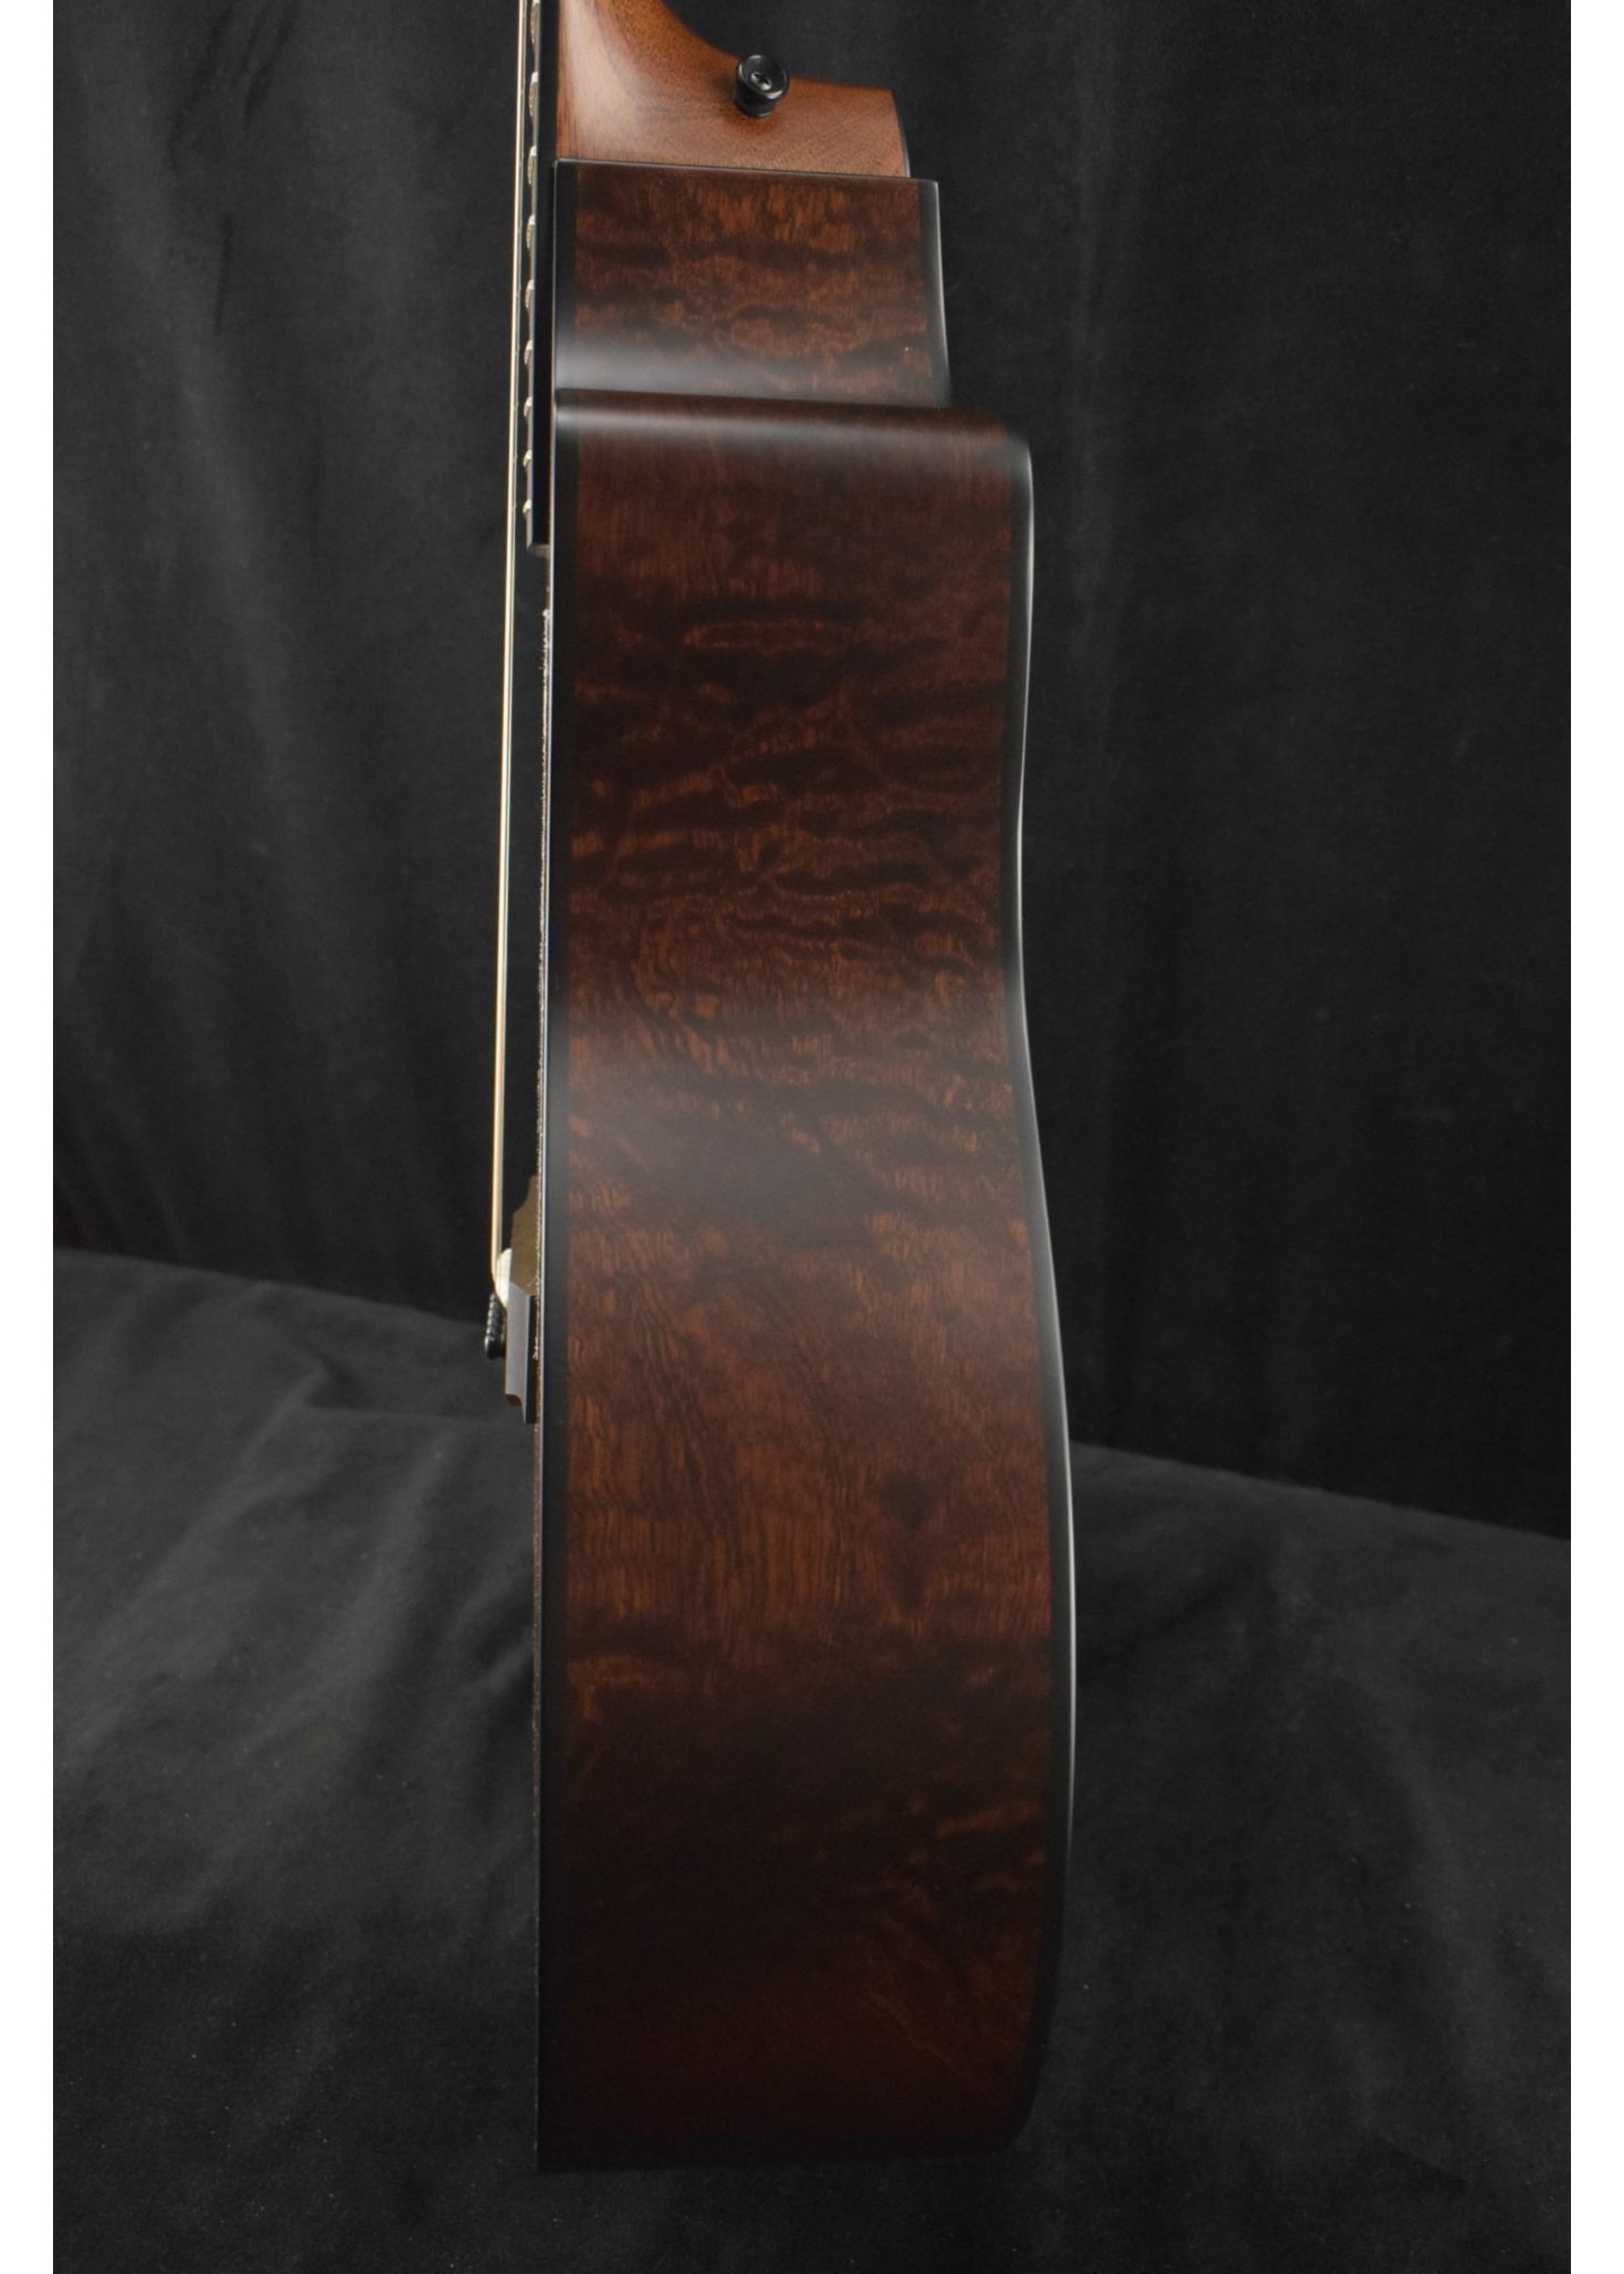 Taylor Taylor 314ce LTD Quilted Sapele and Torrefied Spruce